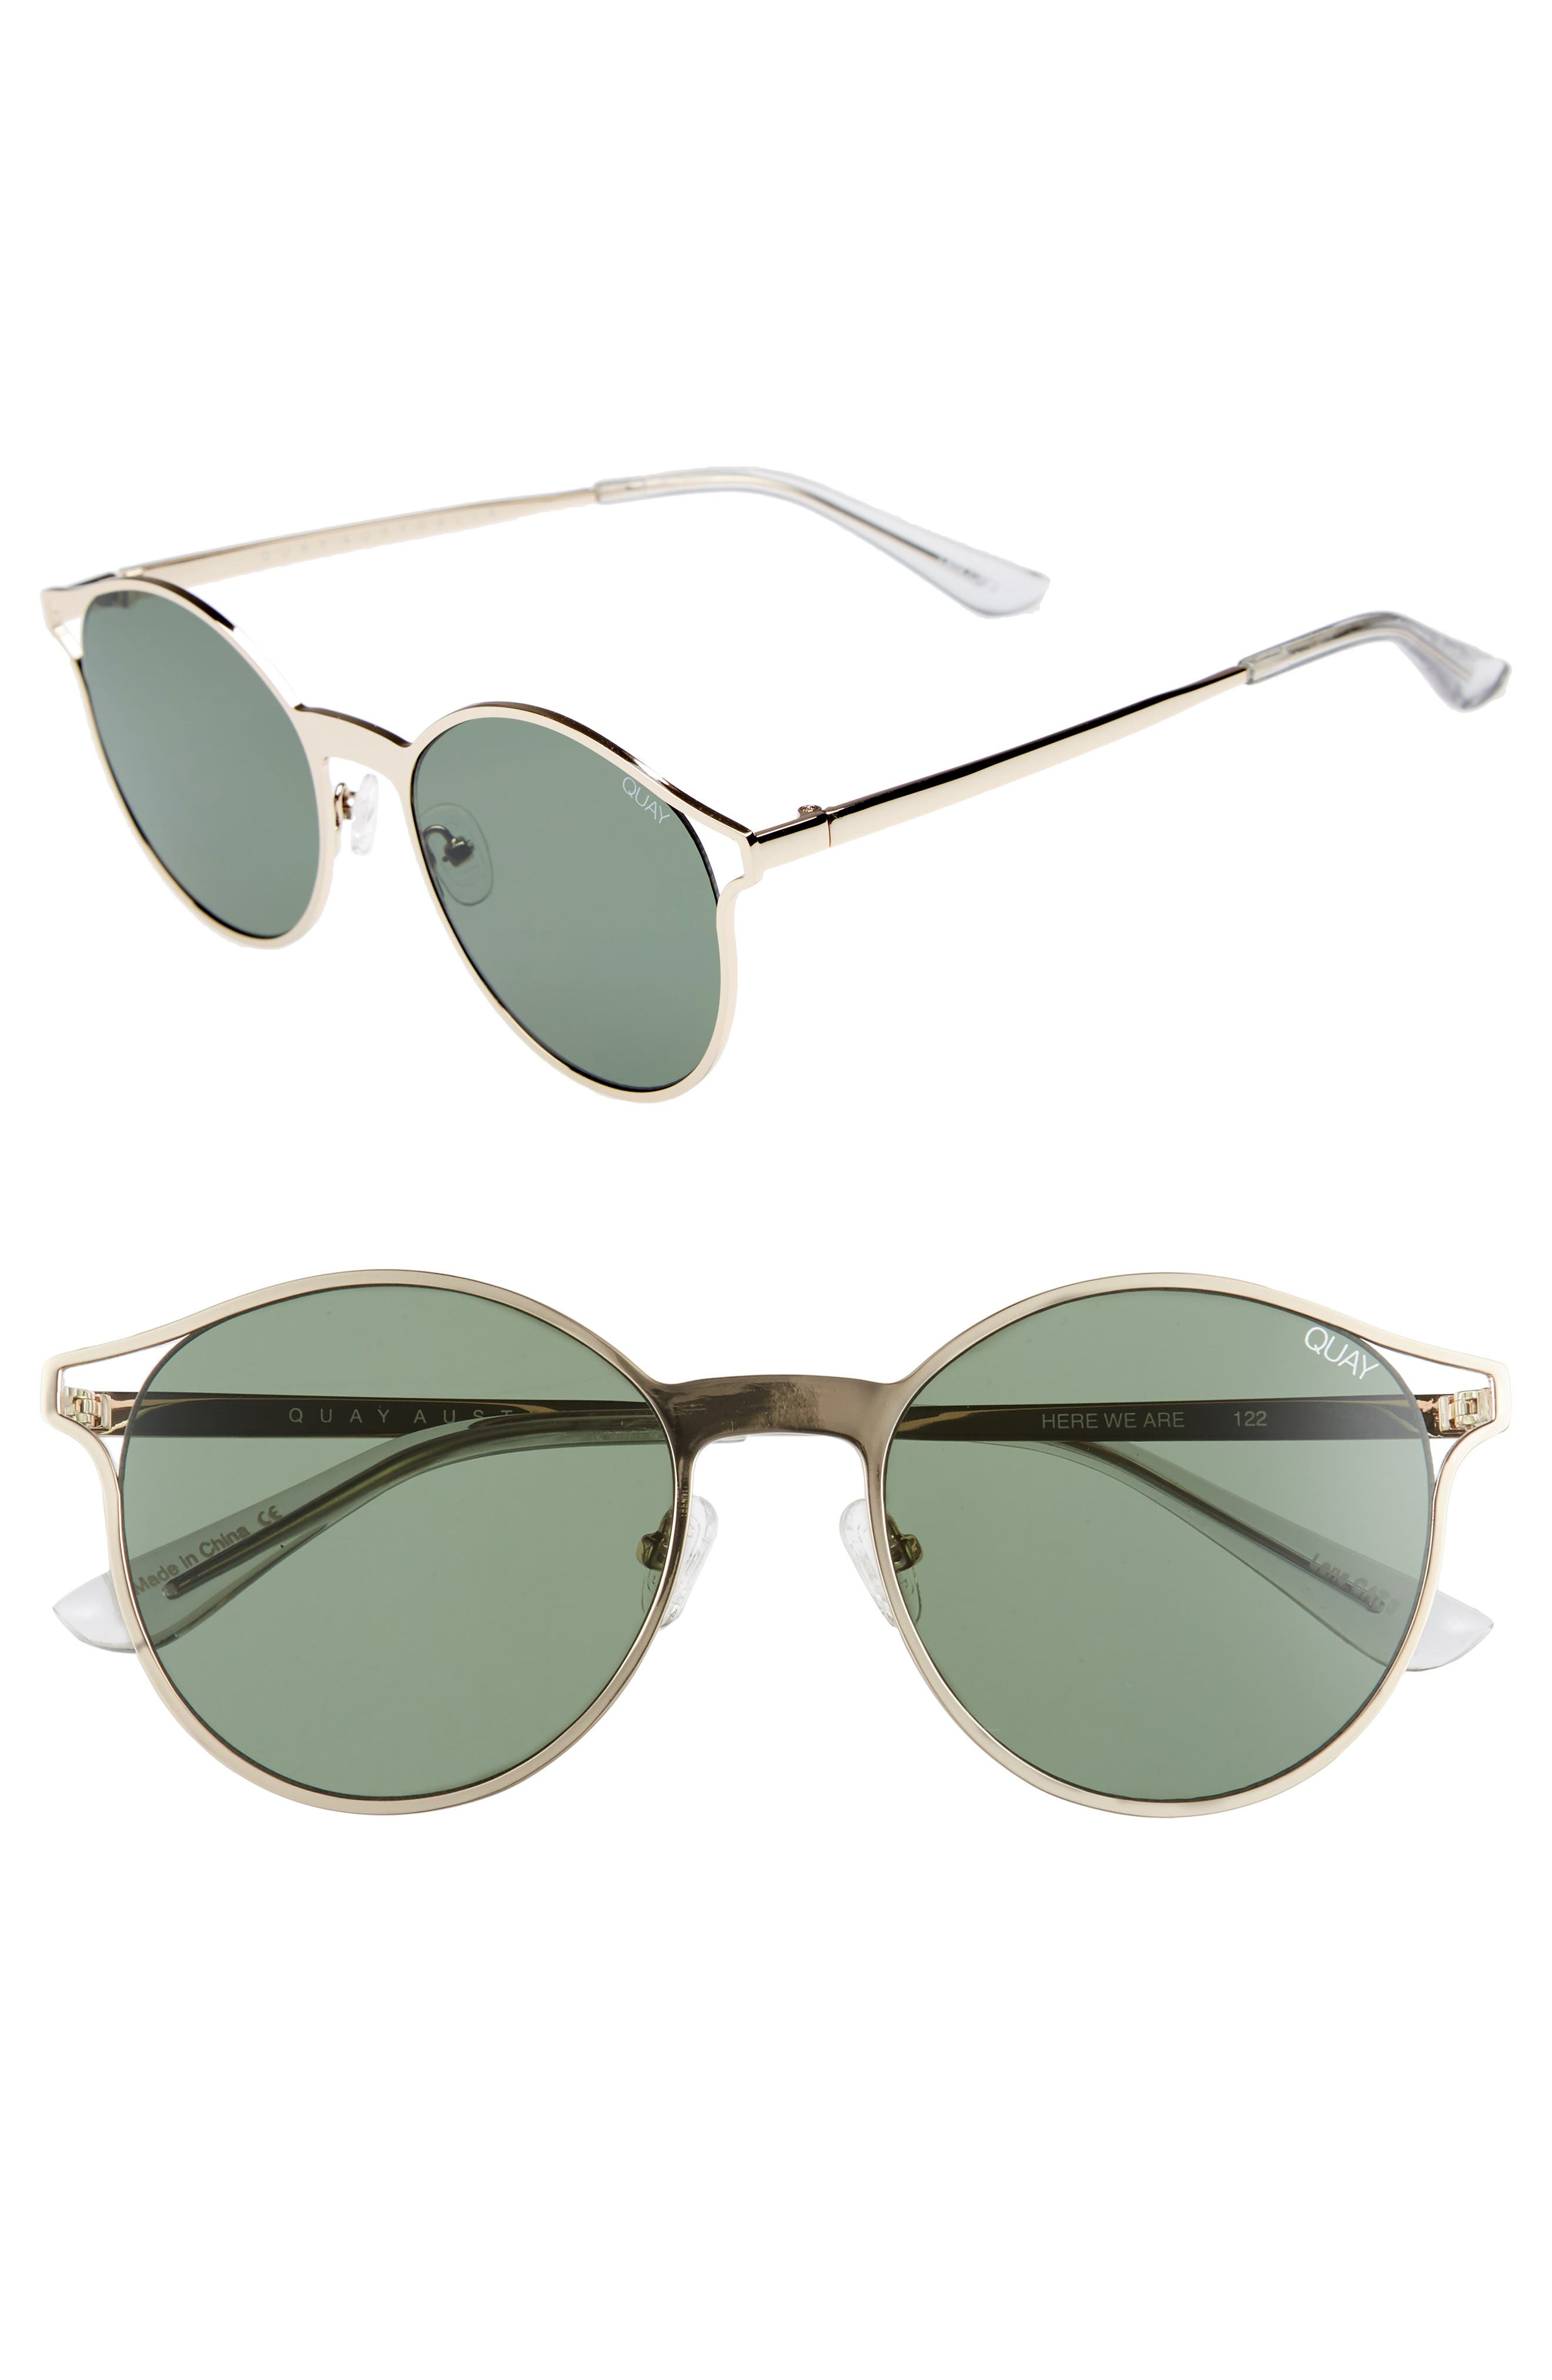 Quay Australia Here We Are 53mm Round Sunglasses